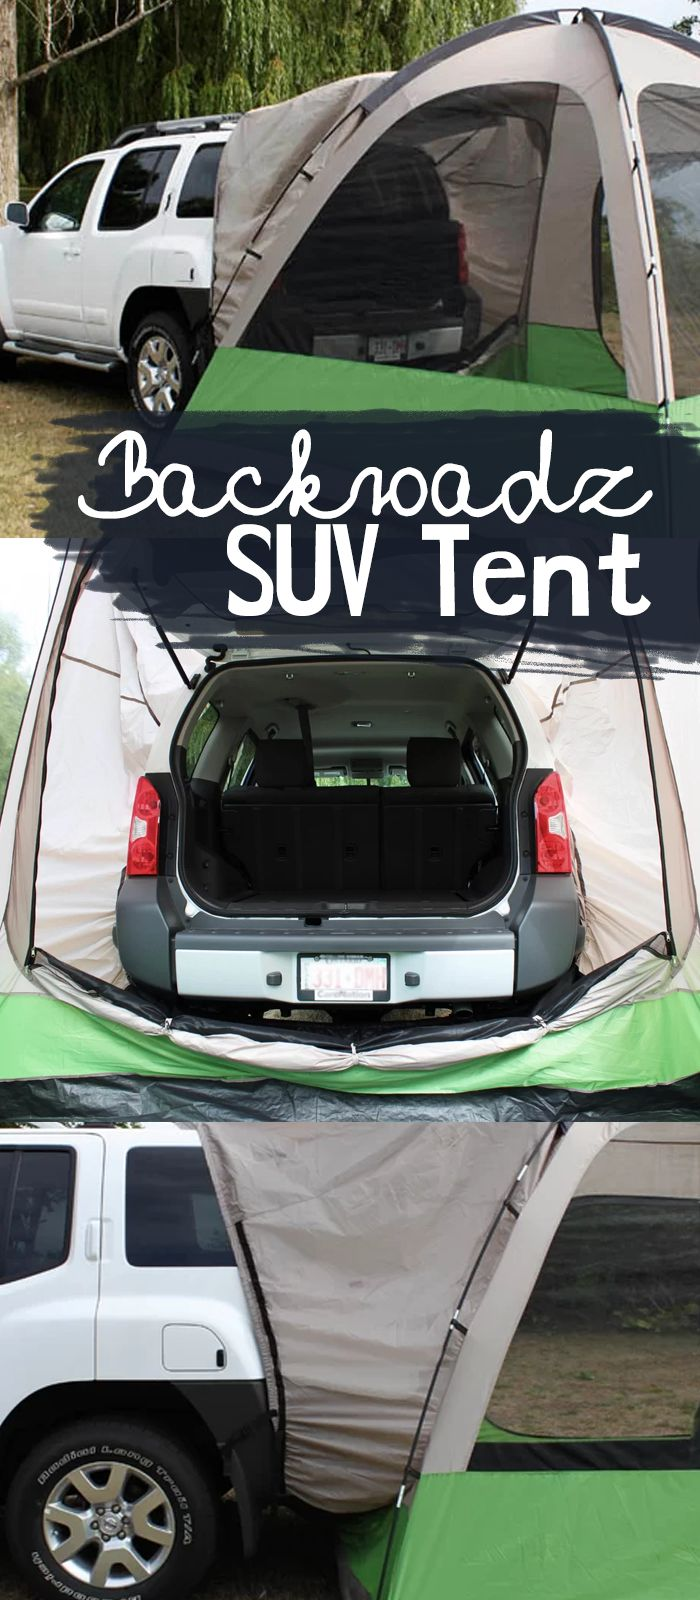 Featuring a space-efficient design the Napier Outdoors Backroadz SUV Tent is great for travel and car c&ing. The tent is designed to fit every CUV SUV ... & Best 25+ Suv camping tent ideas on Pinterest | Suv camping Car ...